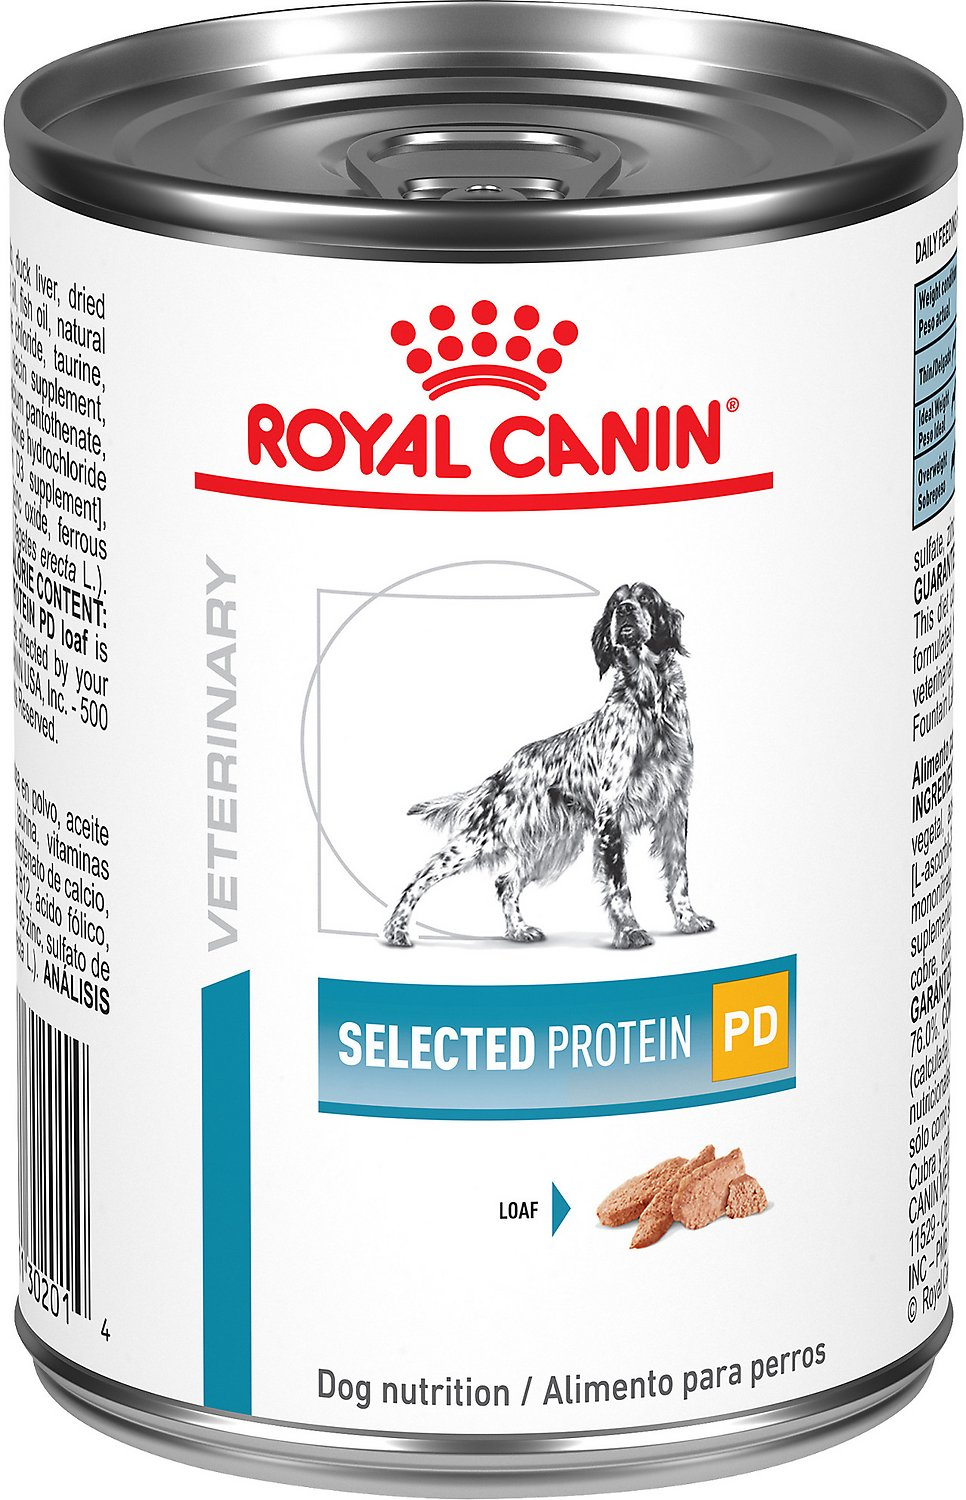 royal canin veterinary diet selected protein adult pd. Black Bedroom Furniture Sets. Home Design Ideas